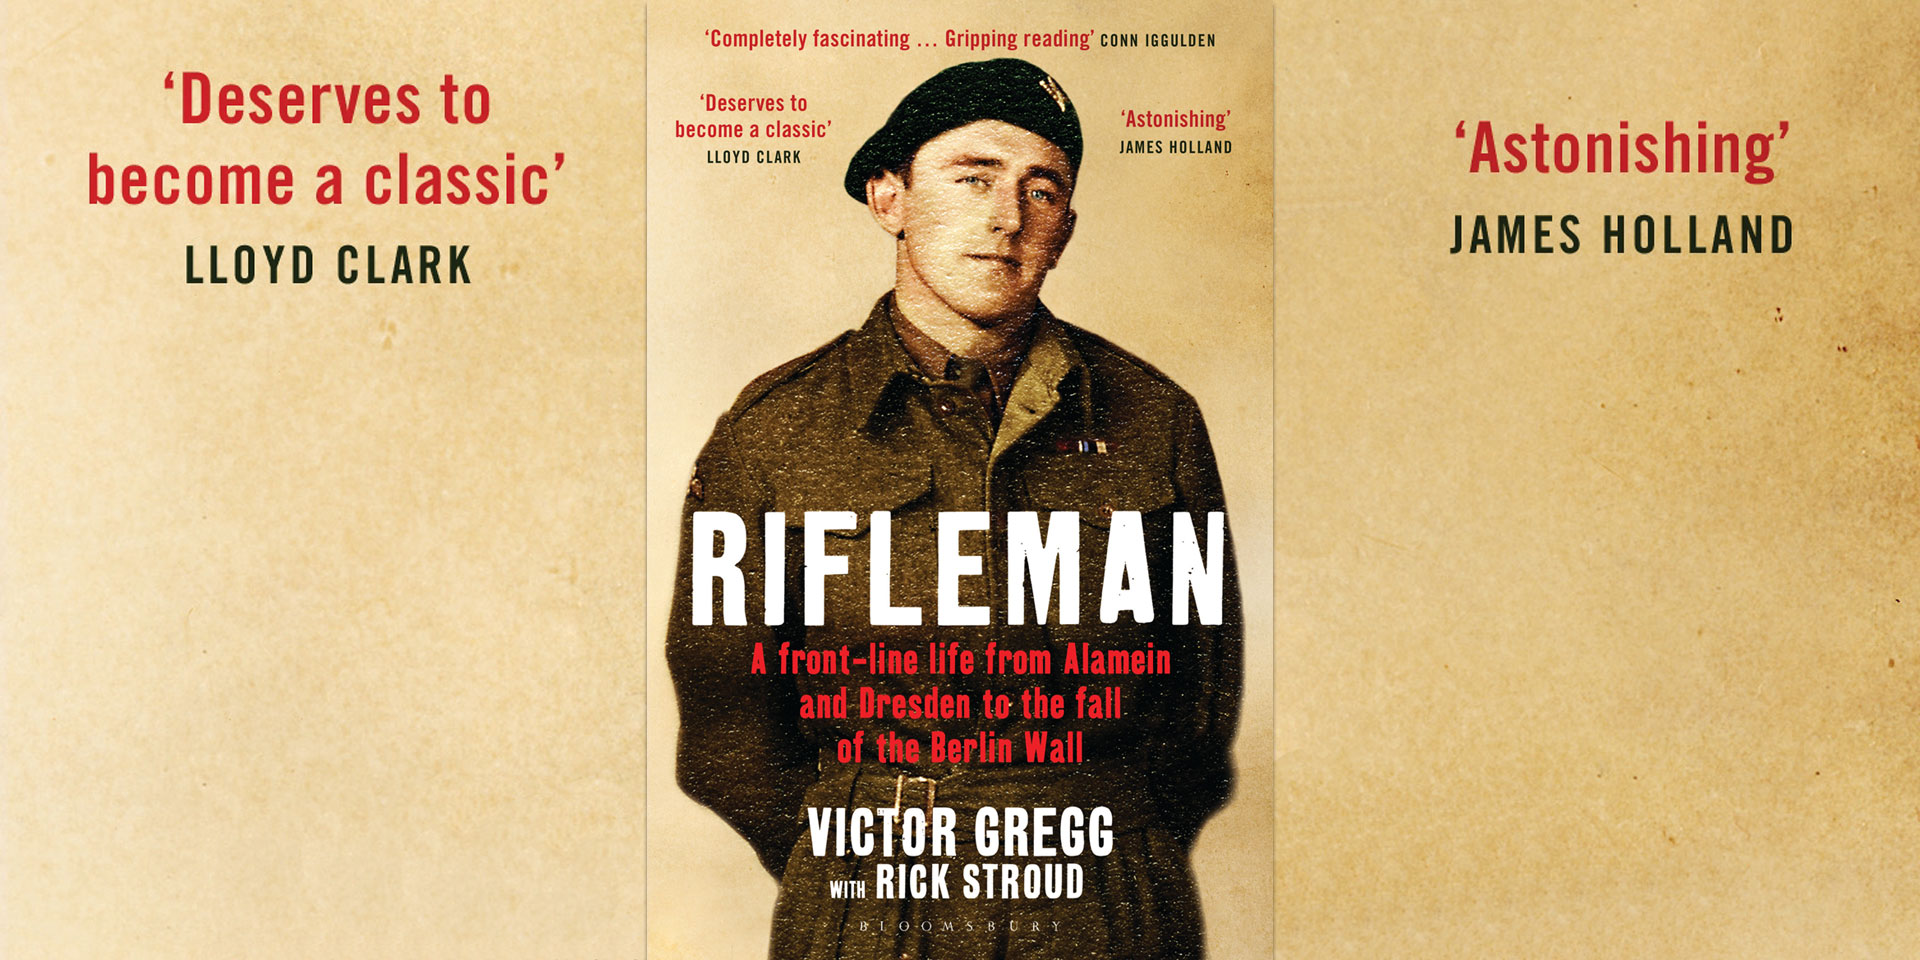 The Rifleman book cover